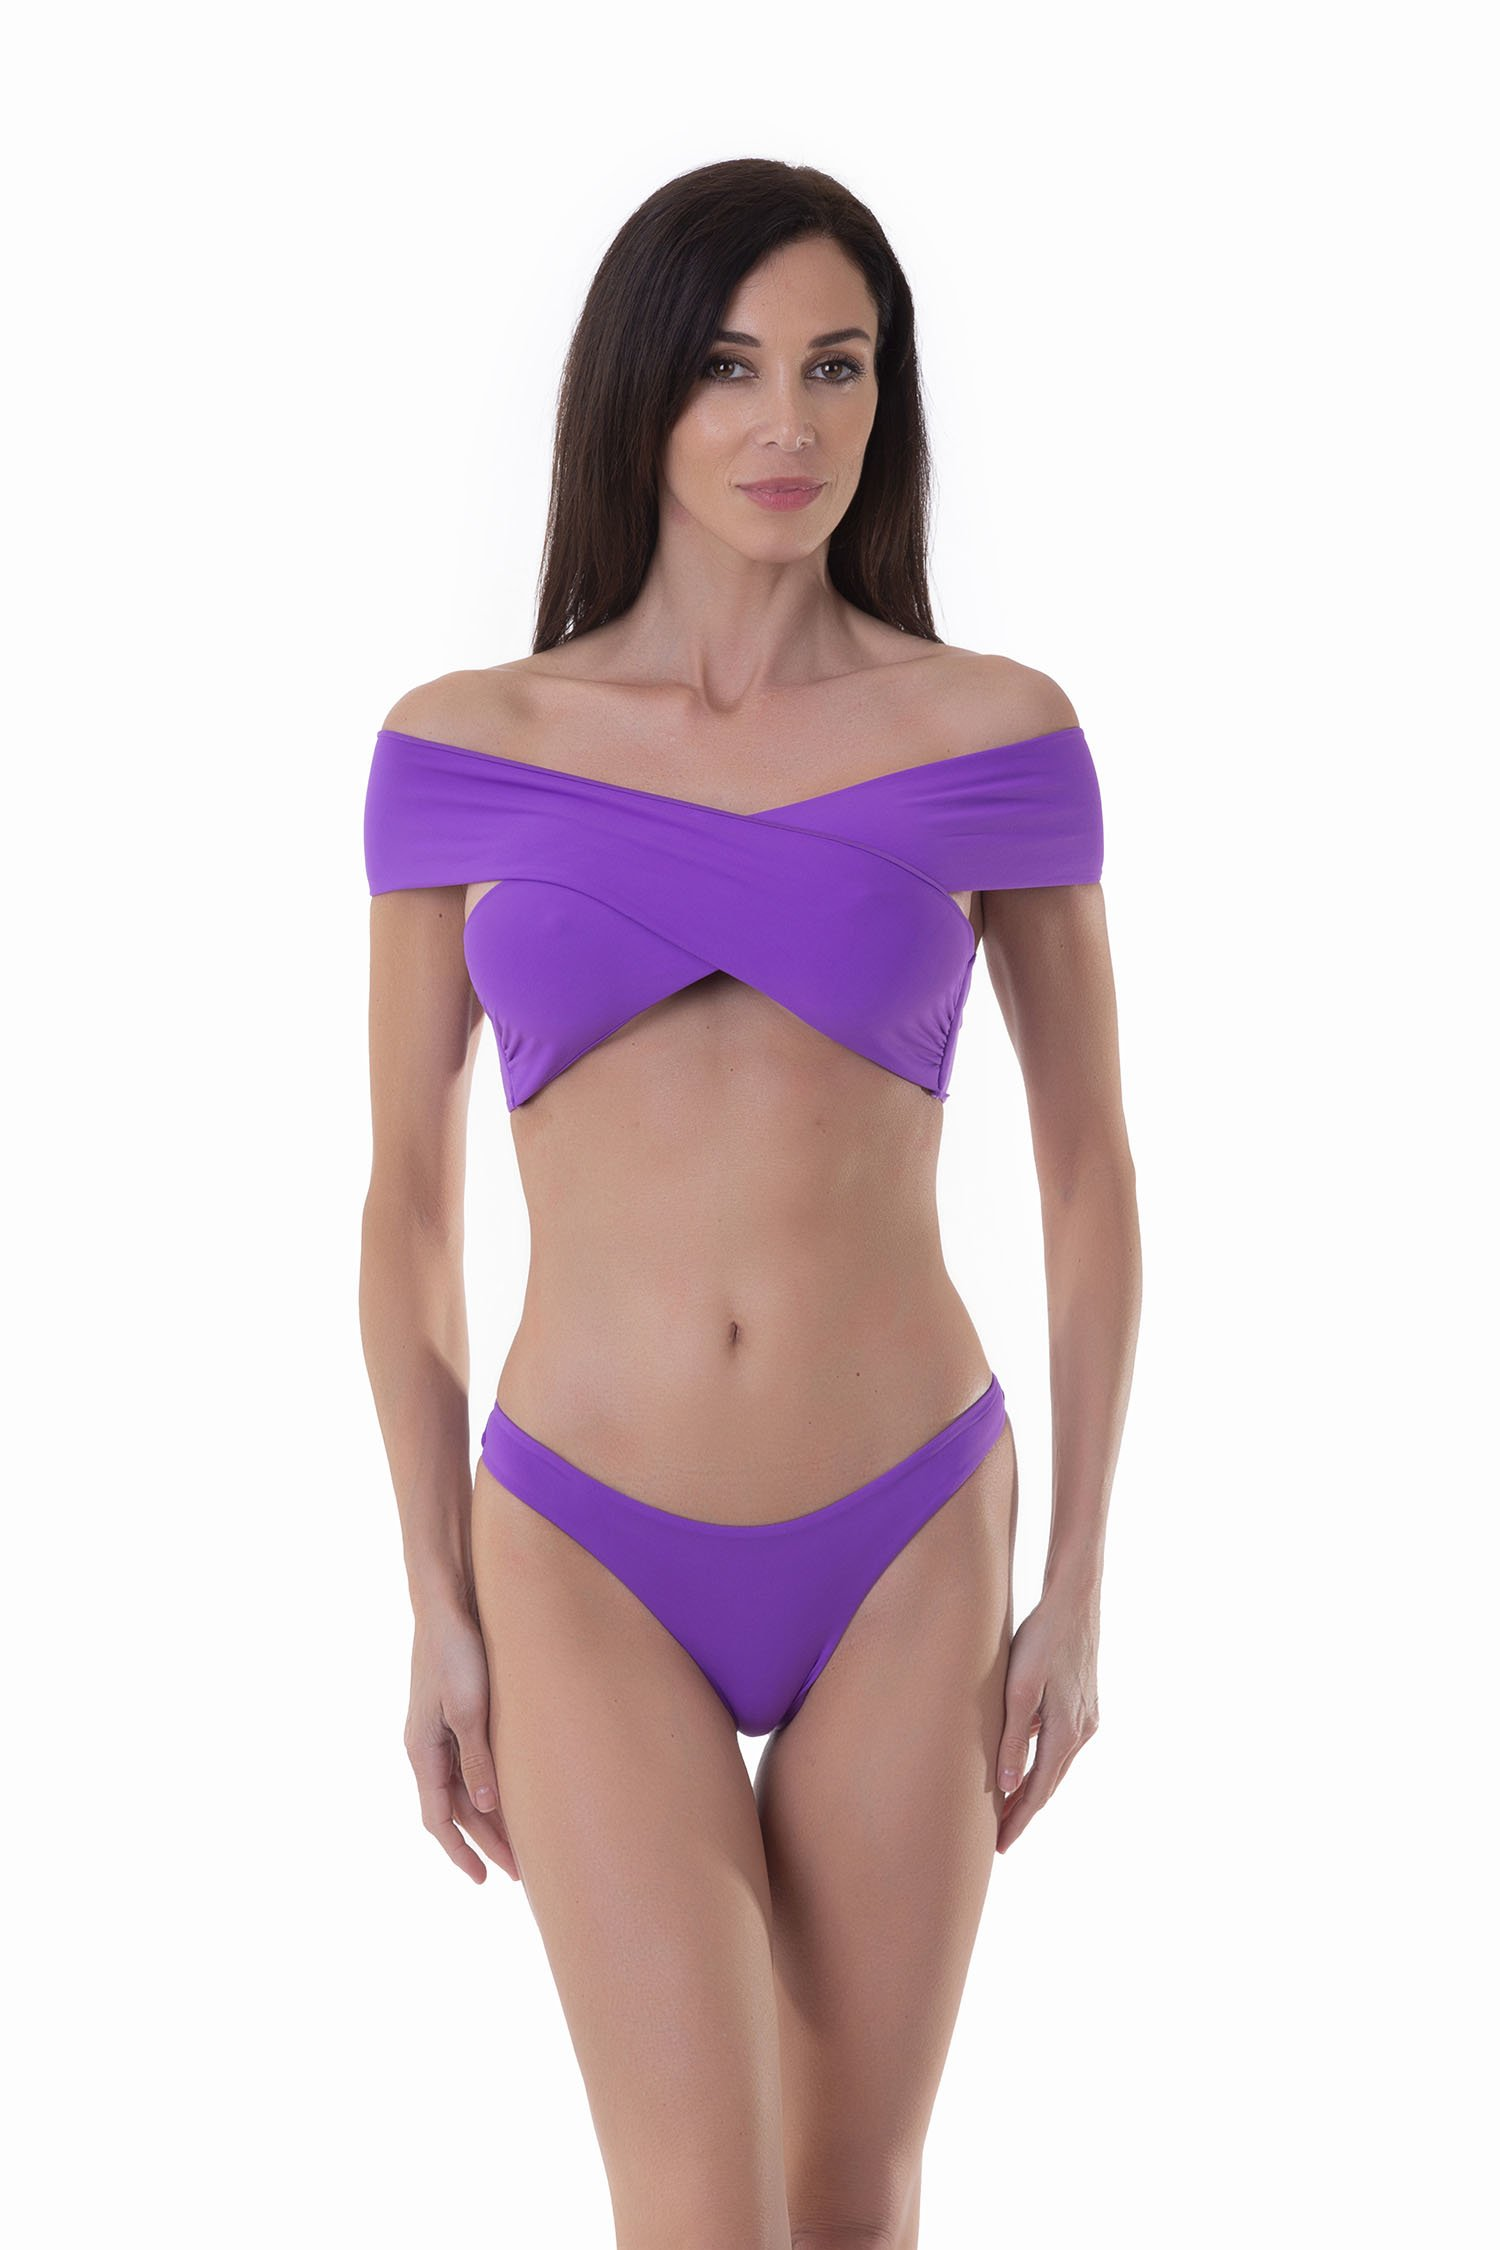 SOLID COLOUR BIKINI TOP WITH CROSSED BANDS - Viola James